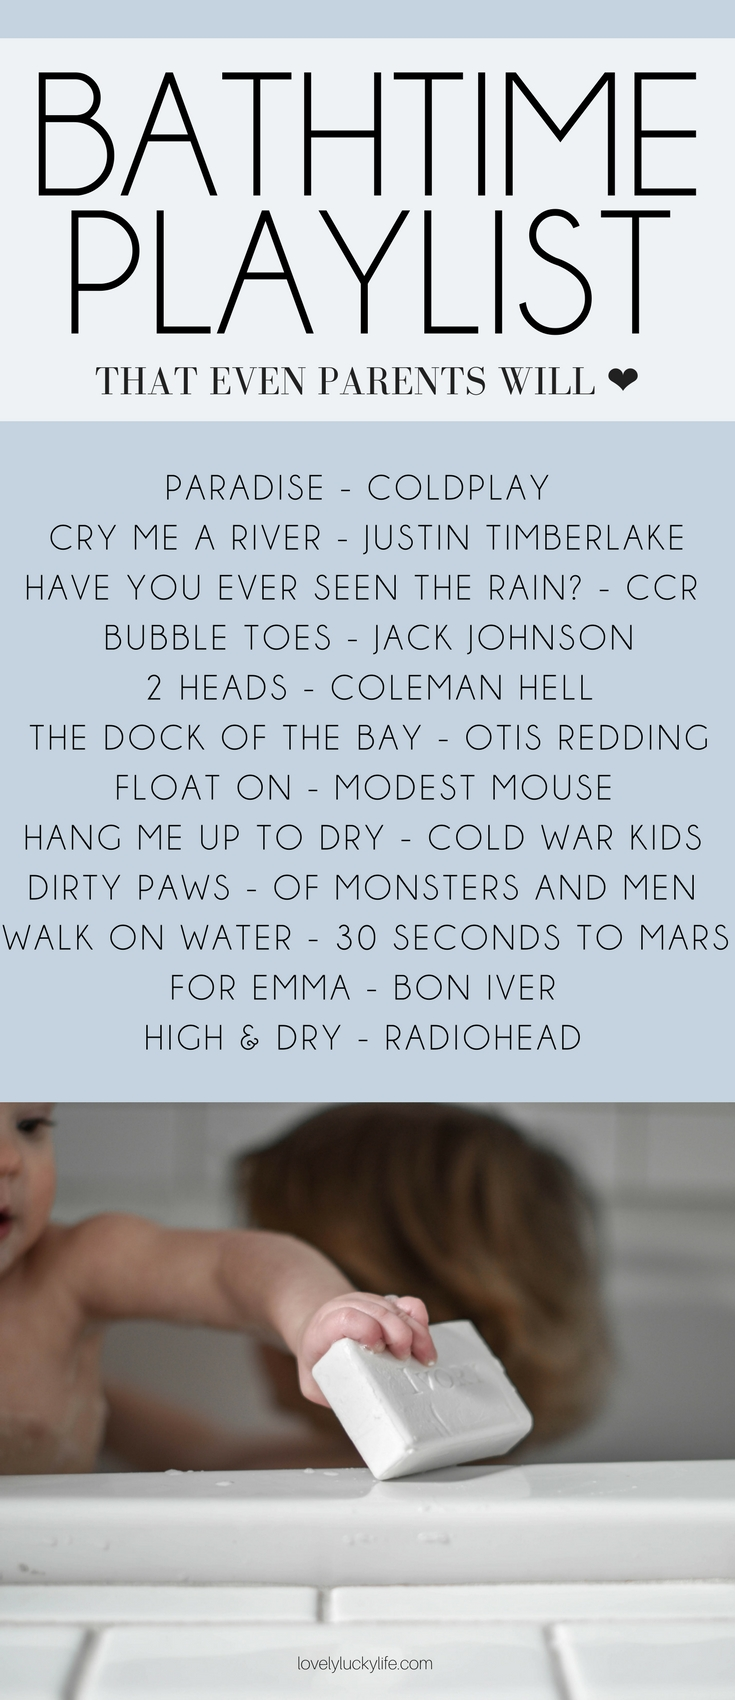 this playlist for bath time is so good - kid-friendly but full of songs for adults